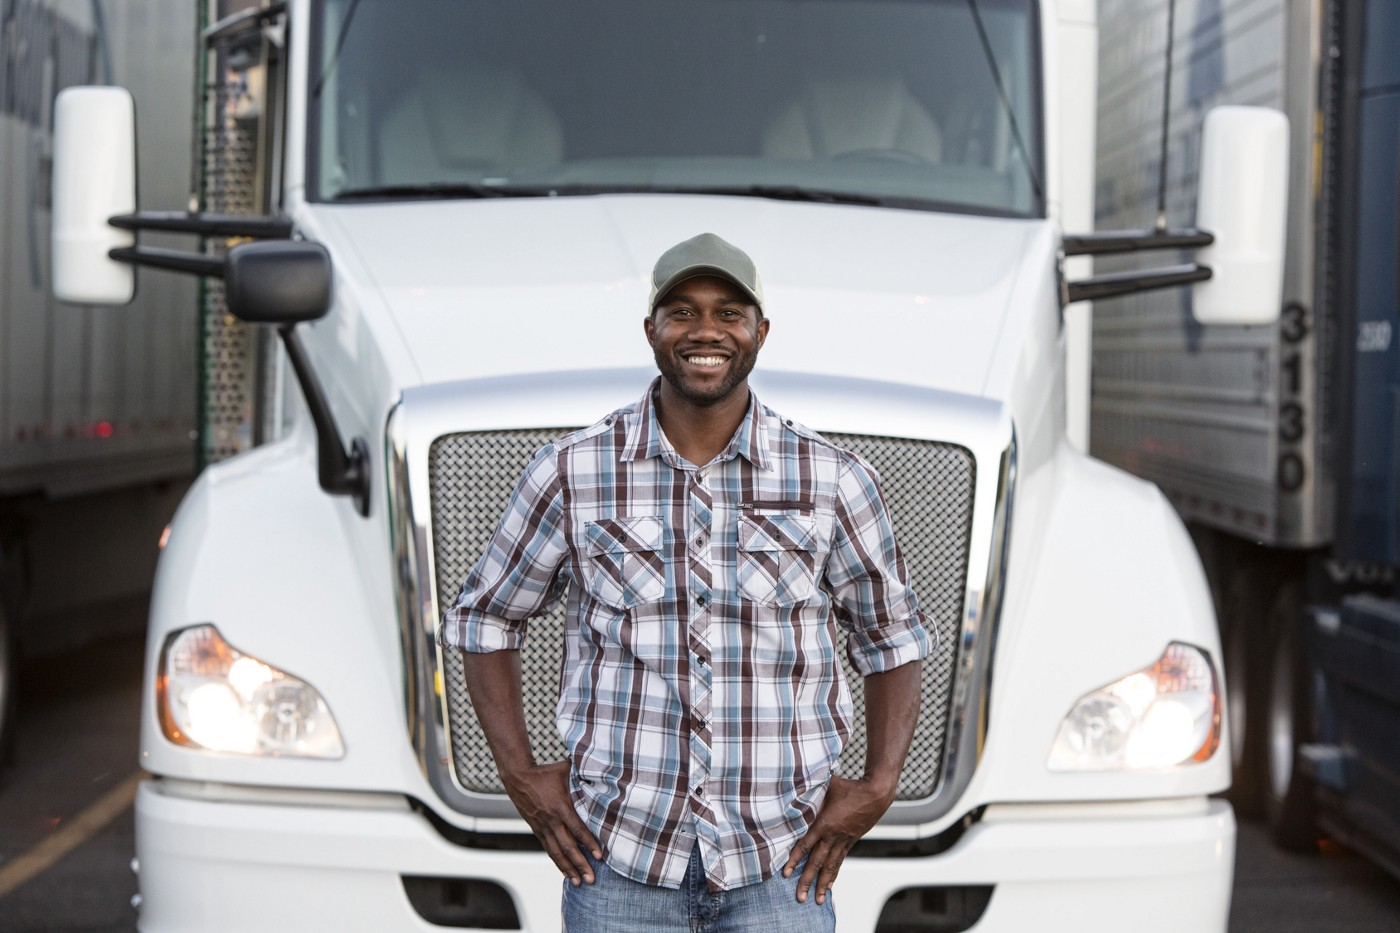 Military Driver Program enabling Veterans; a driver in front of a truck.